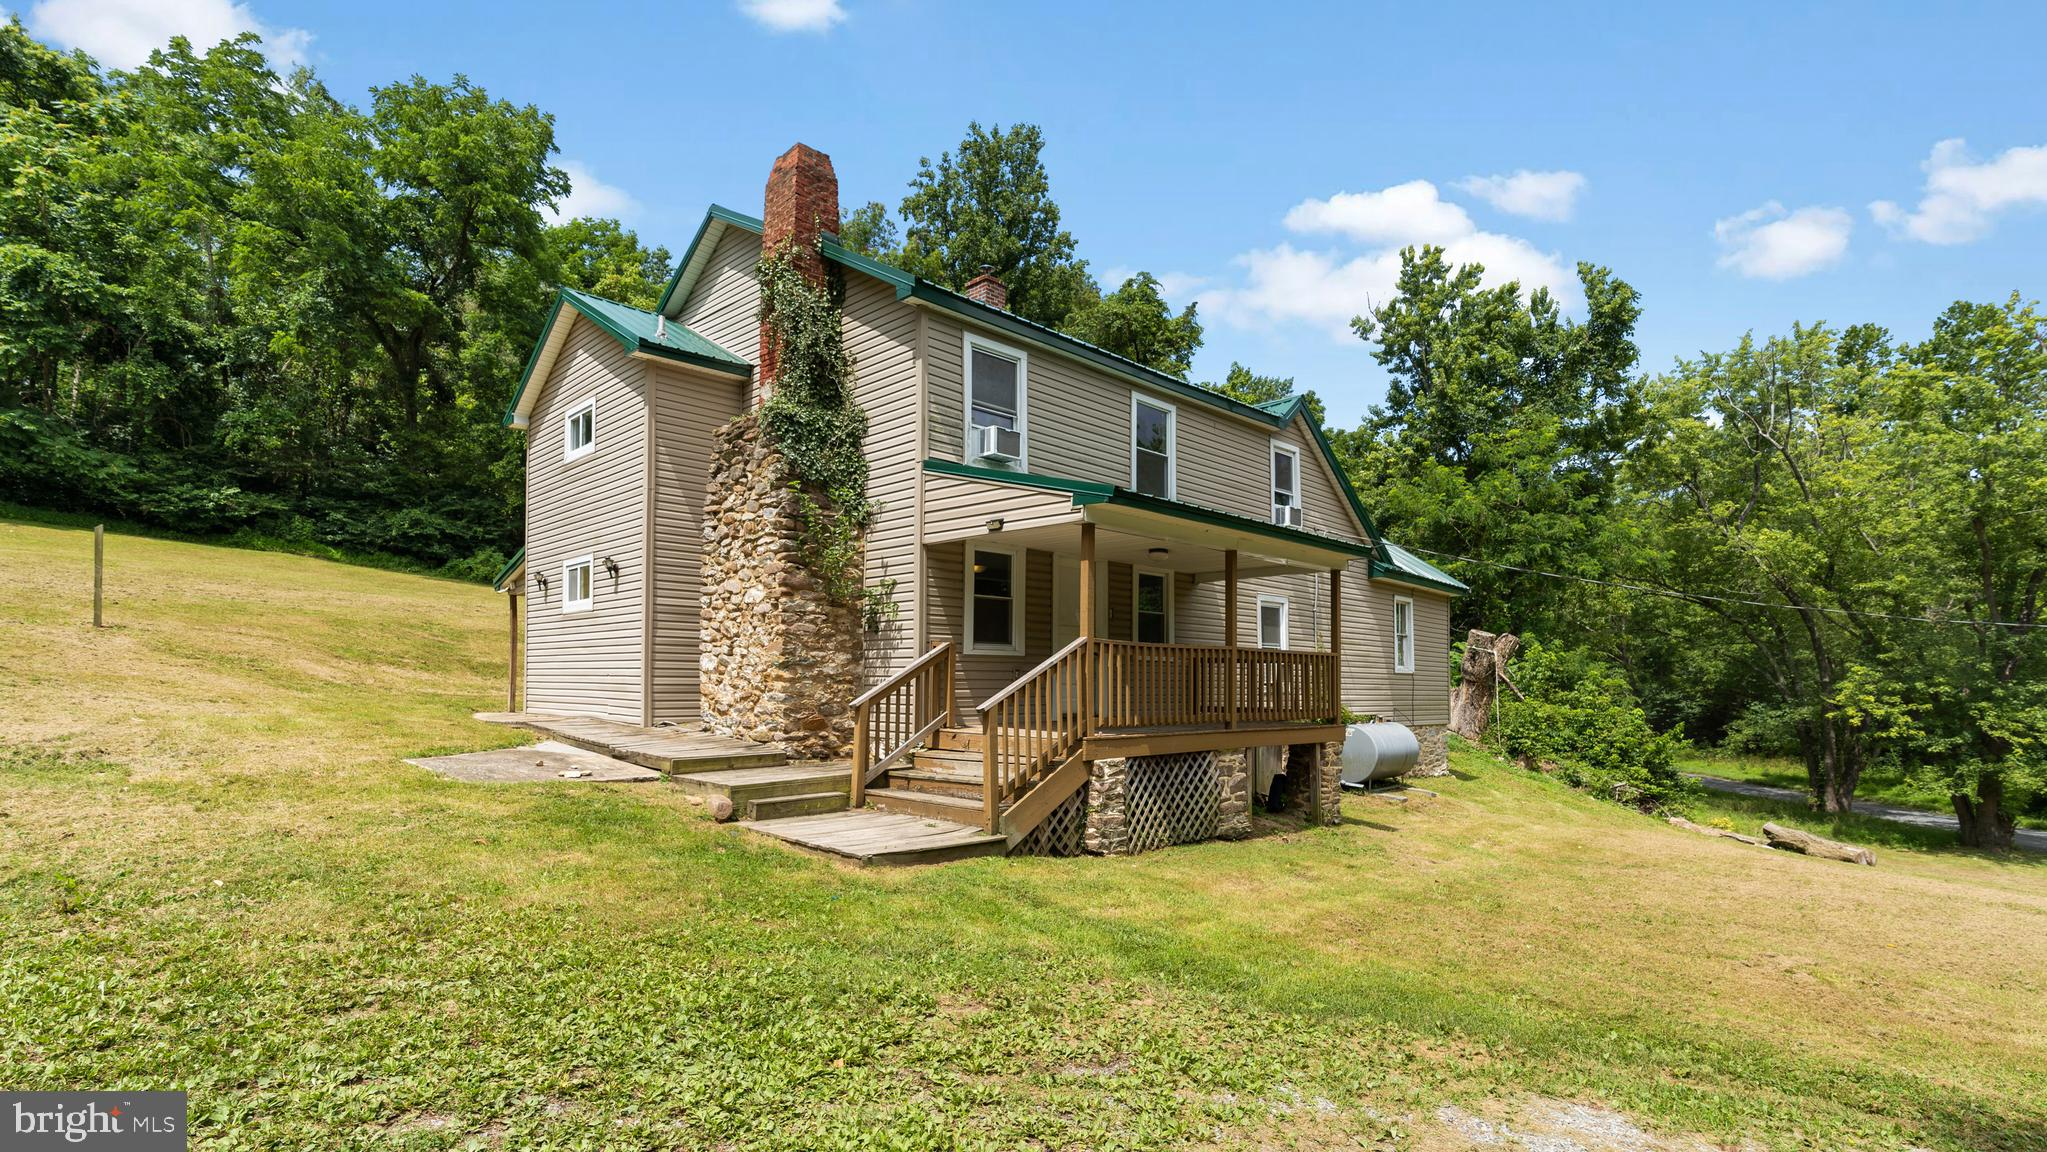 You will adore this charming country home nestled between Short Hill Mountain and the Blue Ridge loc